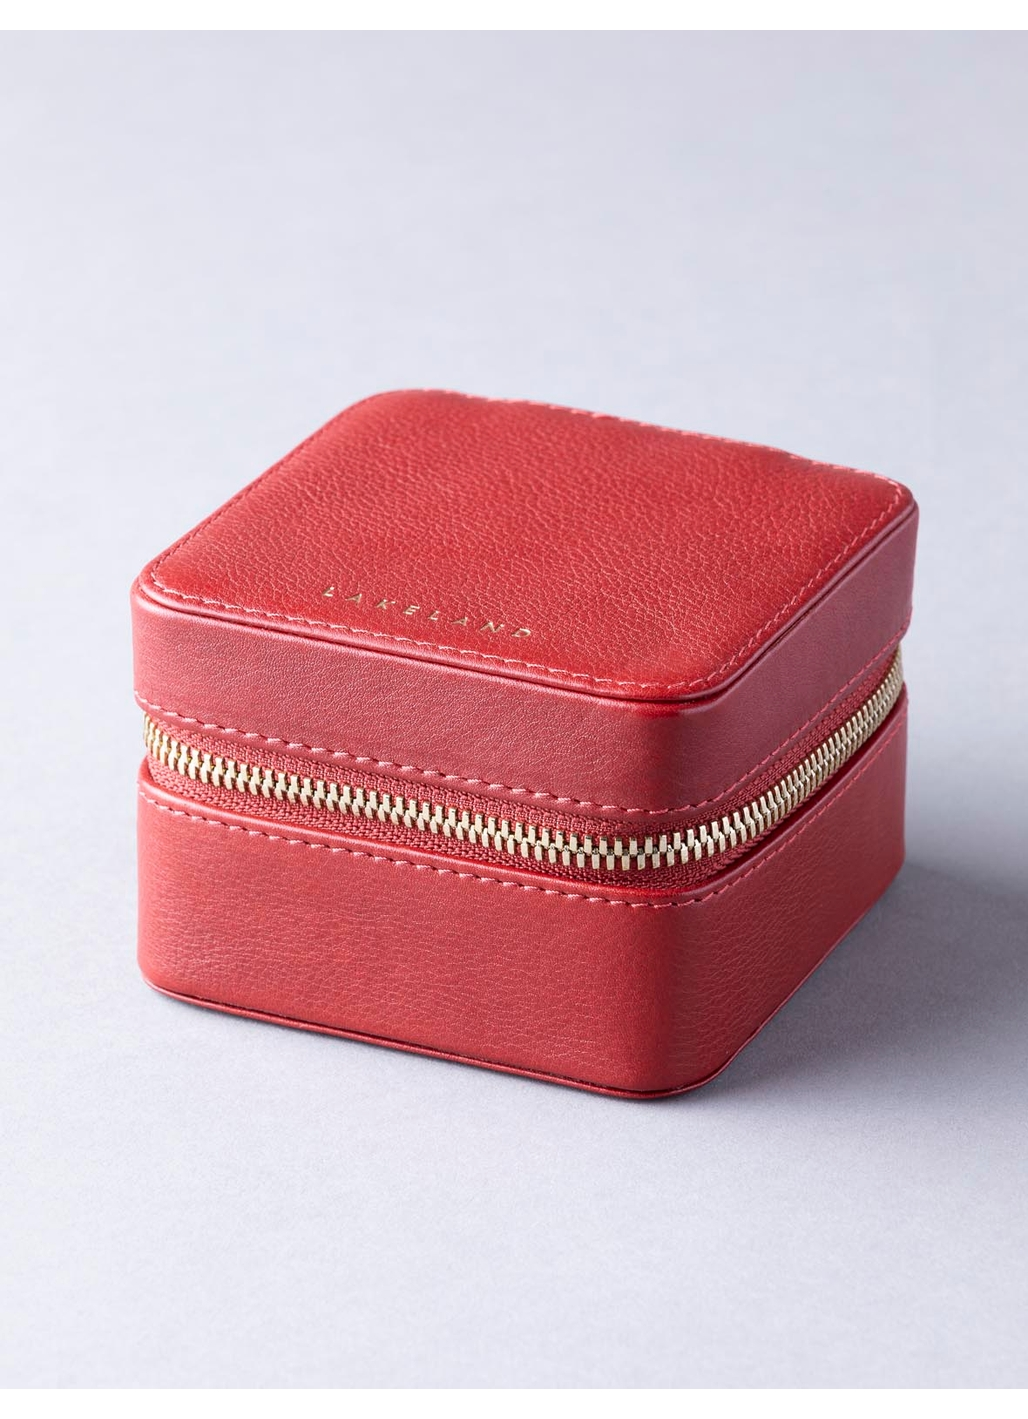 Wray Leather Jewellery Box in Red